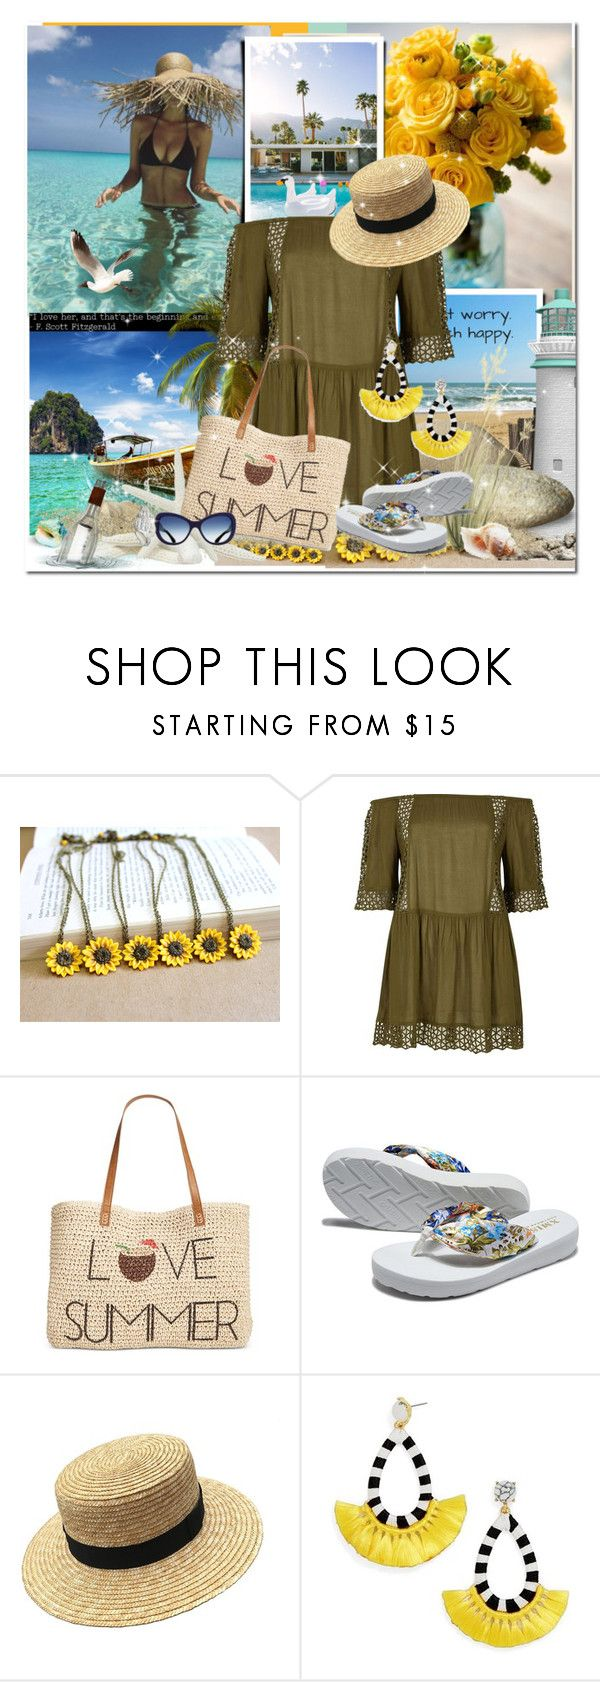 """SUMMER"" by bellamonica ❤ liked on Polyvore featuring River Island, Style & Co. and BaubleBar"